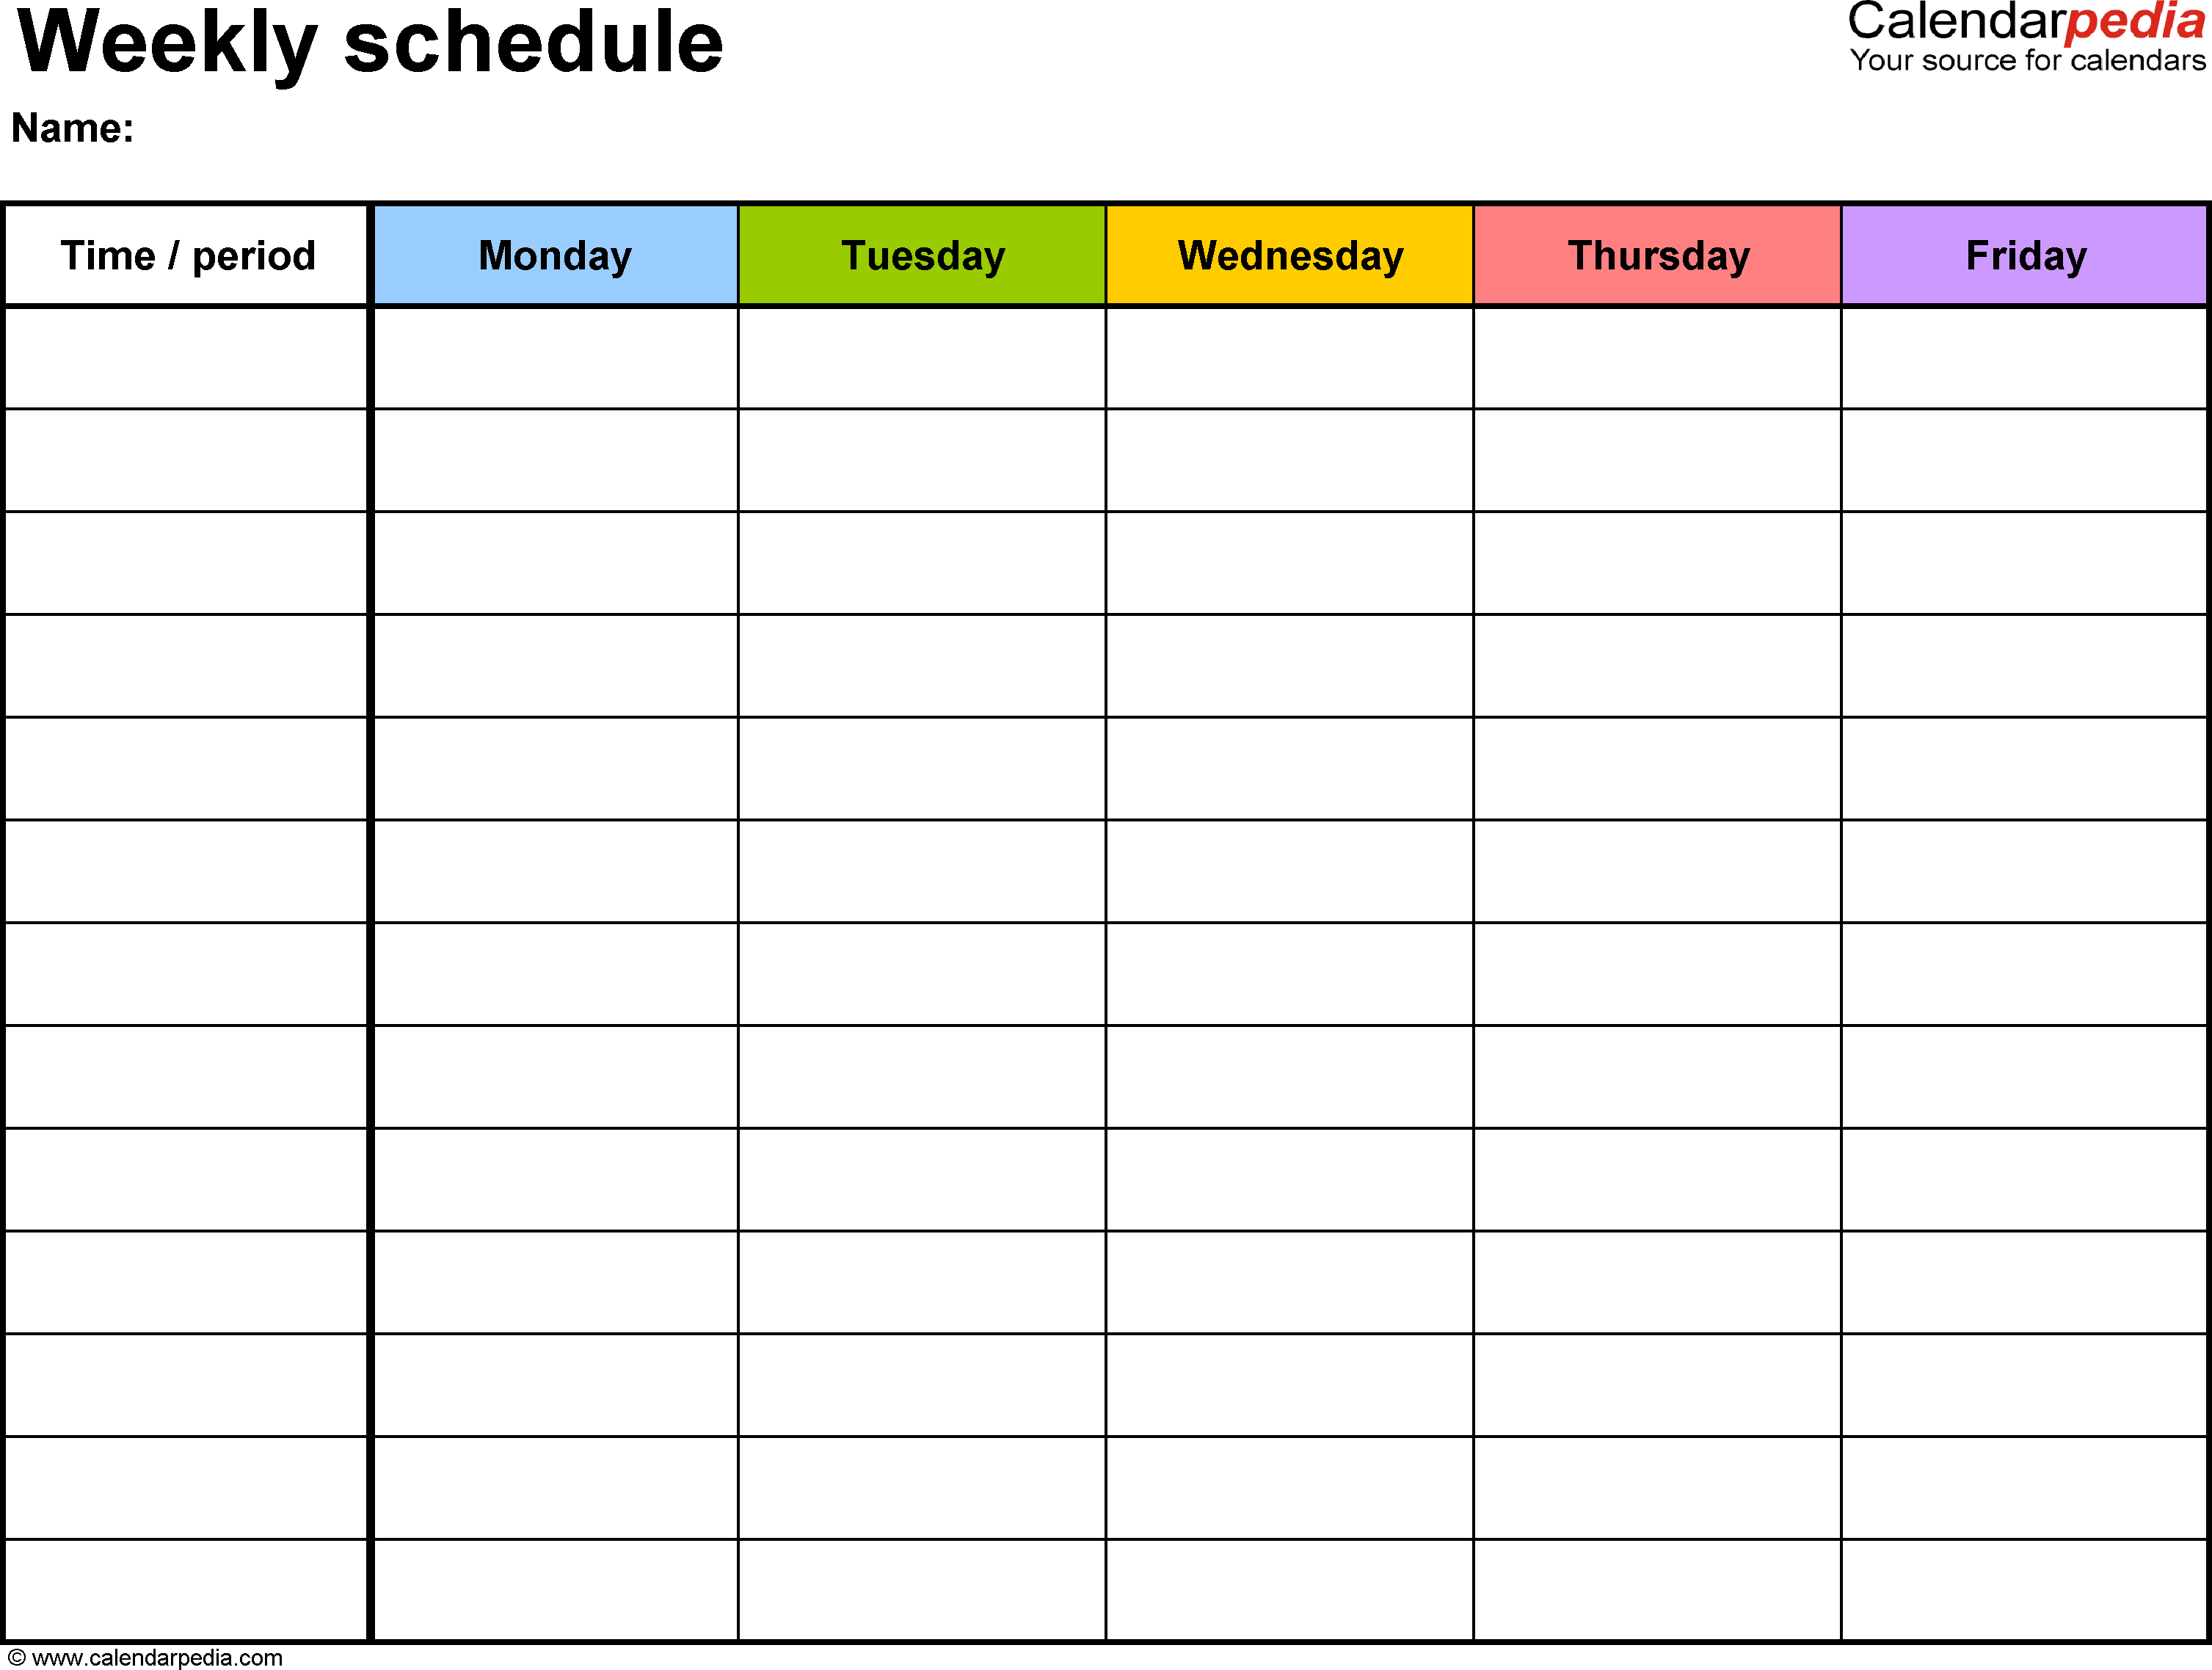 Spreadsheet Calendar Template Intended For Free Weekly Schedule Templates For Excel  18 Templates